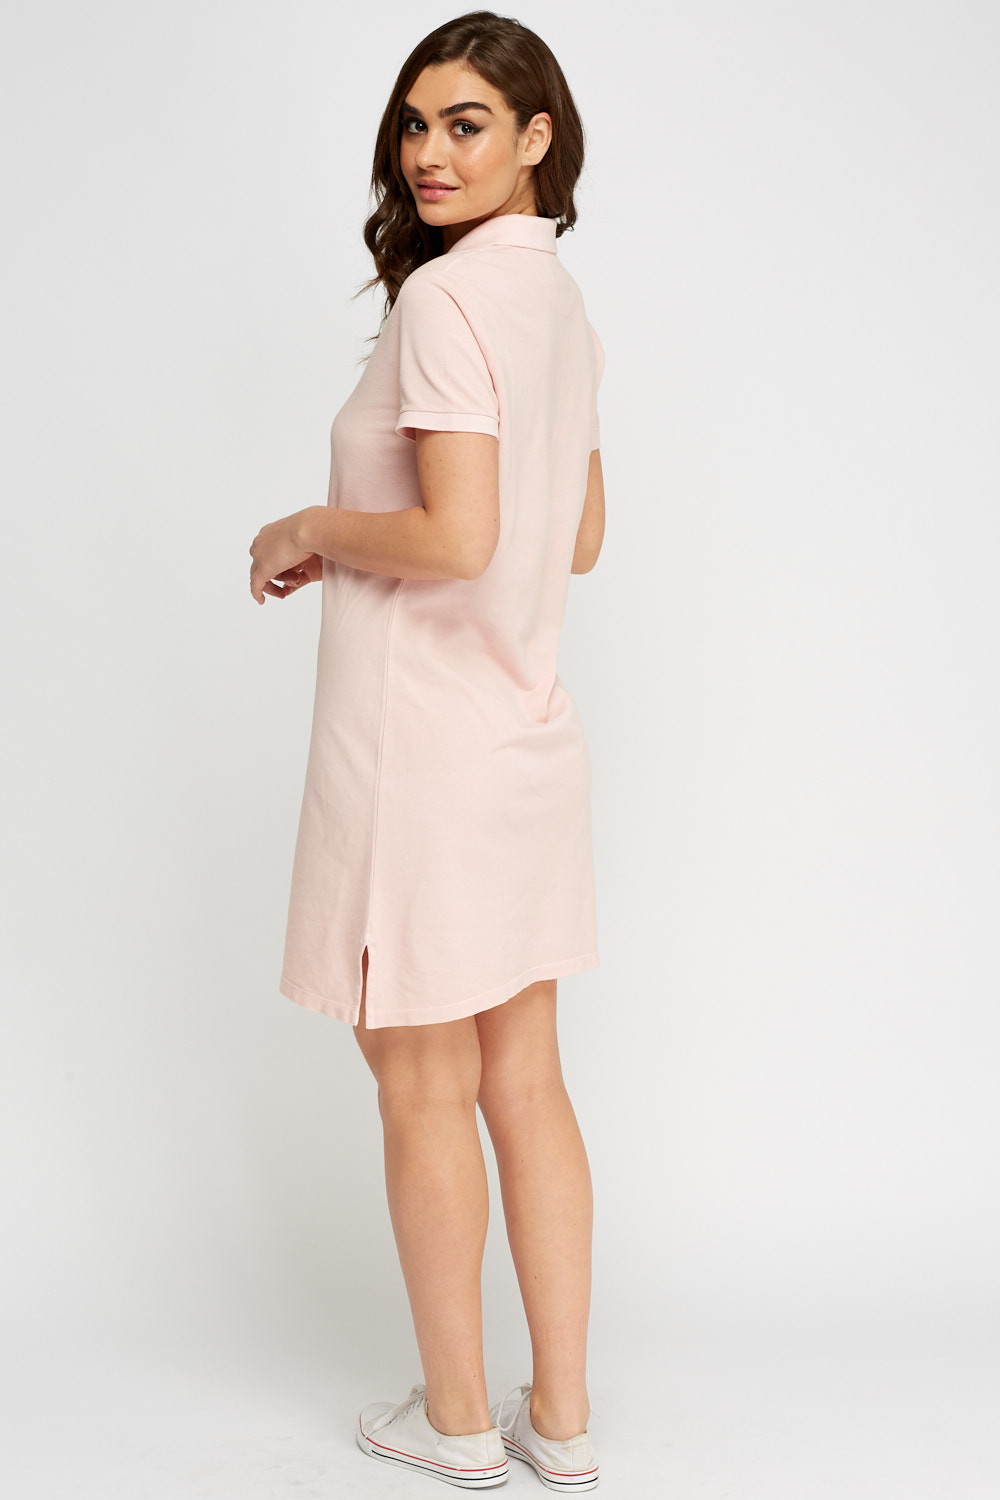 Lacoste Polo Shirt Dress Limited Edition Discount Designer Stock